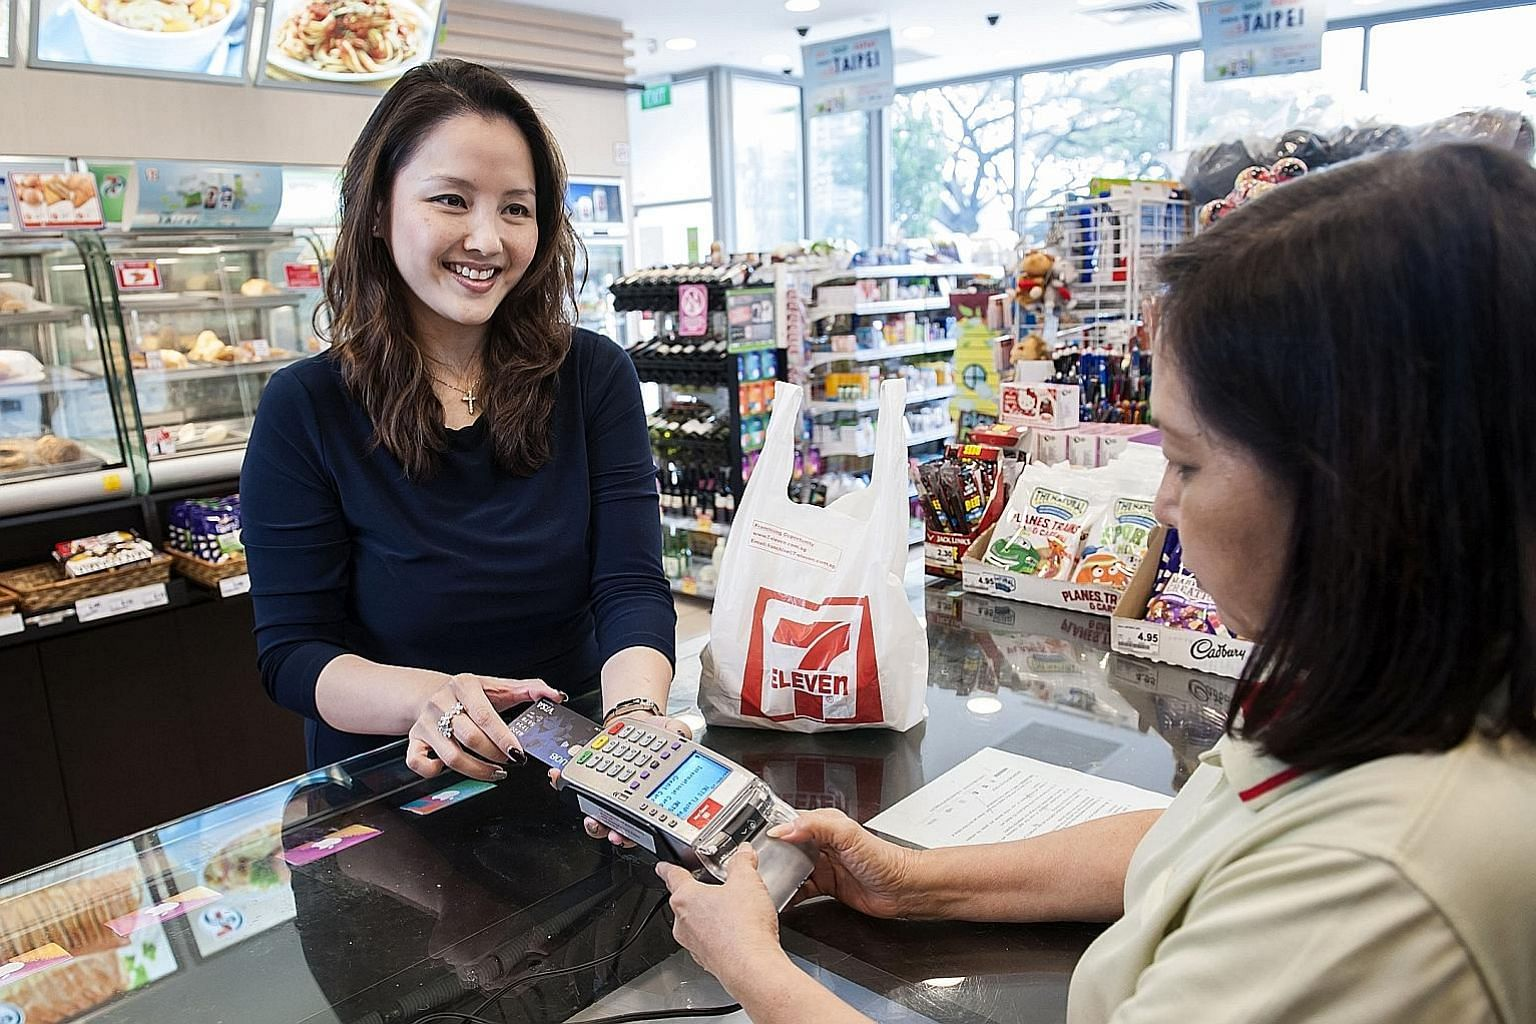 Even as mobile wallets such as GrabPay, Singtel Dash and DBS PayLah! are growing in popularity, banks are making more from credit cards. Billings totalled $5.1 billion in April this year, a jump from $5.05 billion in July last year, figures from the Mone